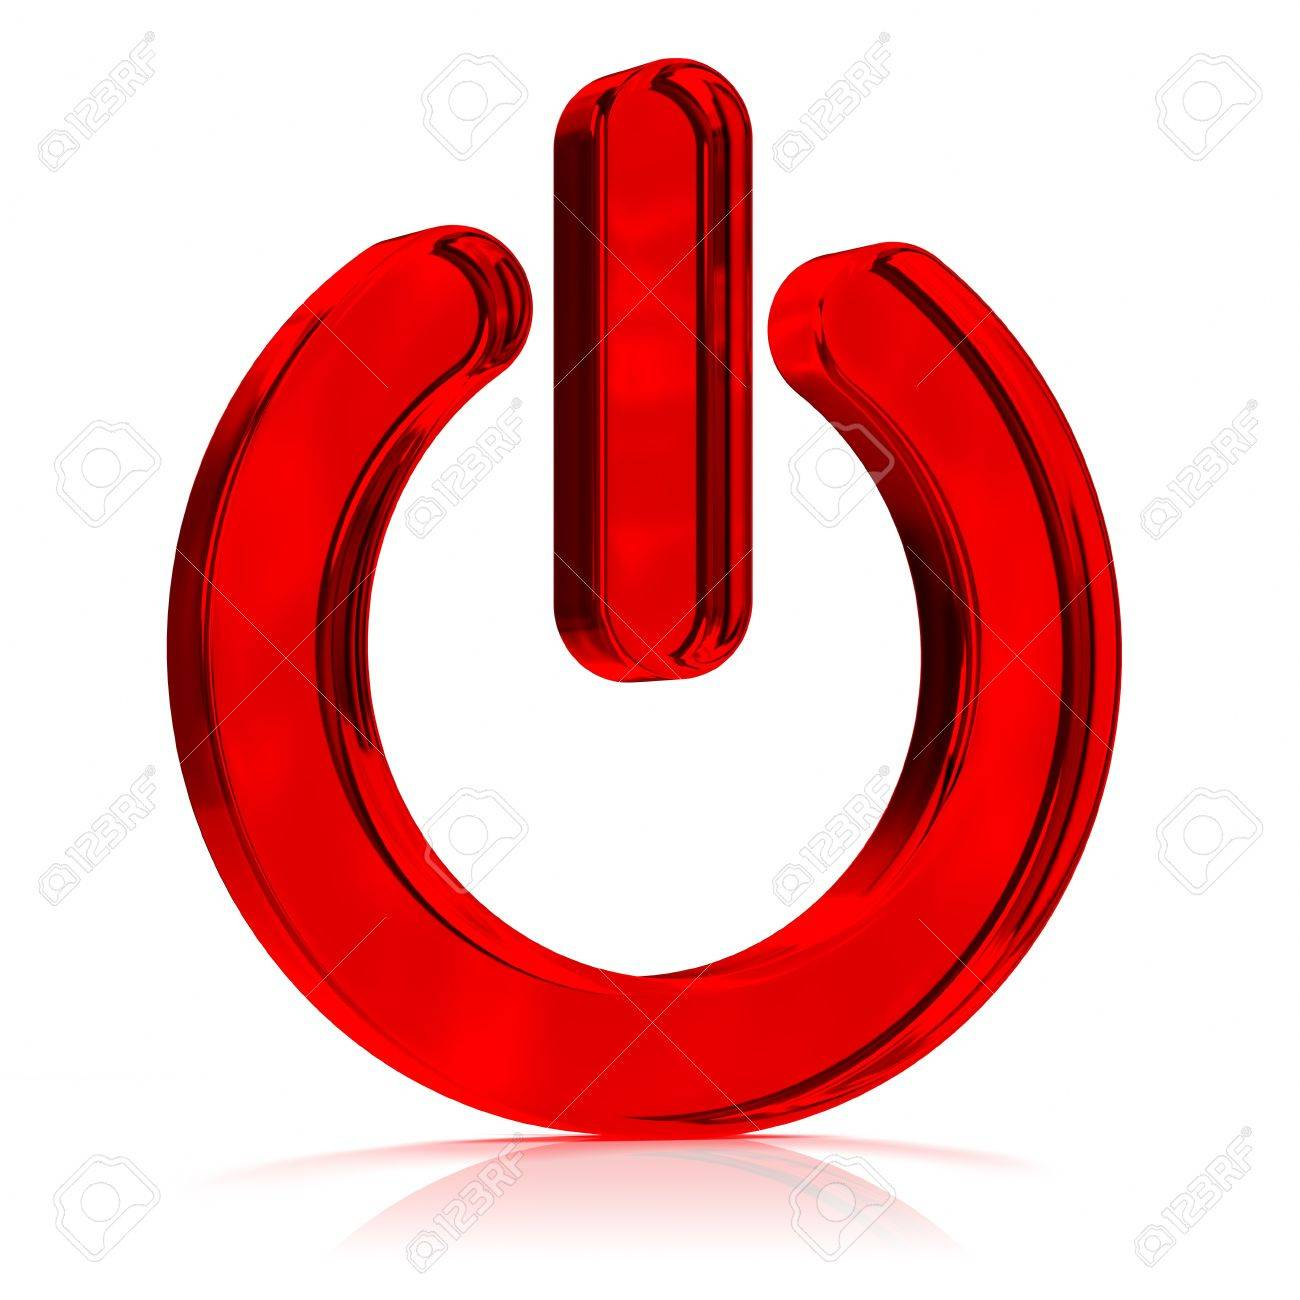 Red glass power off symbol computer icon part of a series stock red glass power off symbol computer icon part of a series stock photo biocorpaavc Choice Image